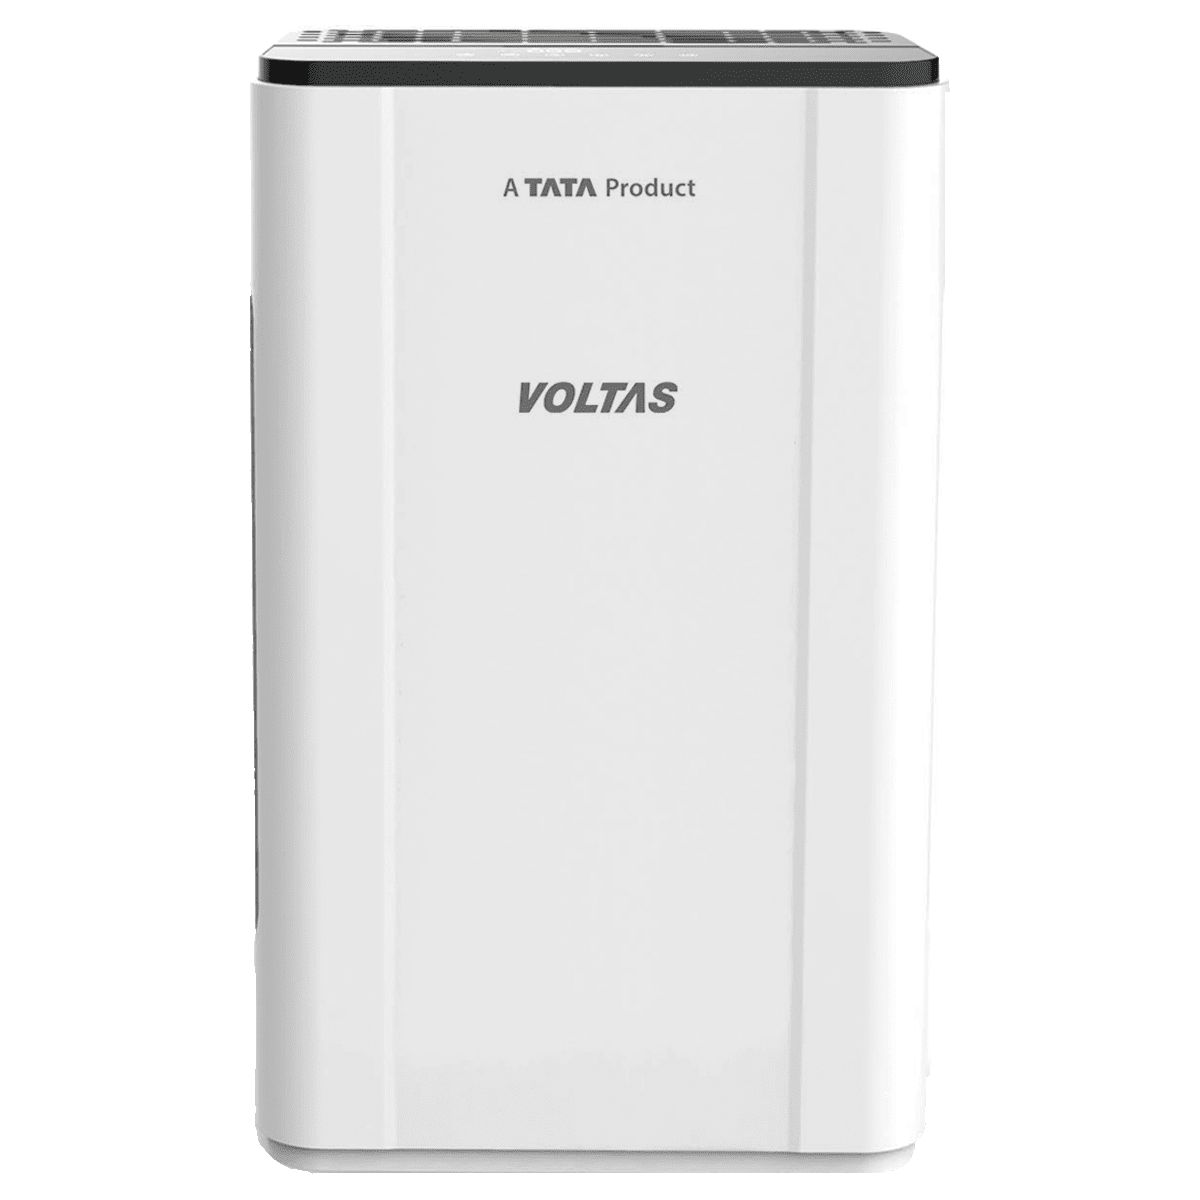 Voltas HEPA Filter Plus UVC Technology Air Purifier (Air Quality Indicator, VAP36TWV, White)